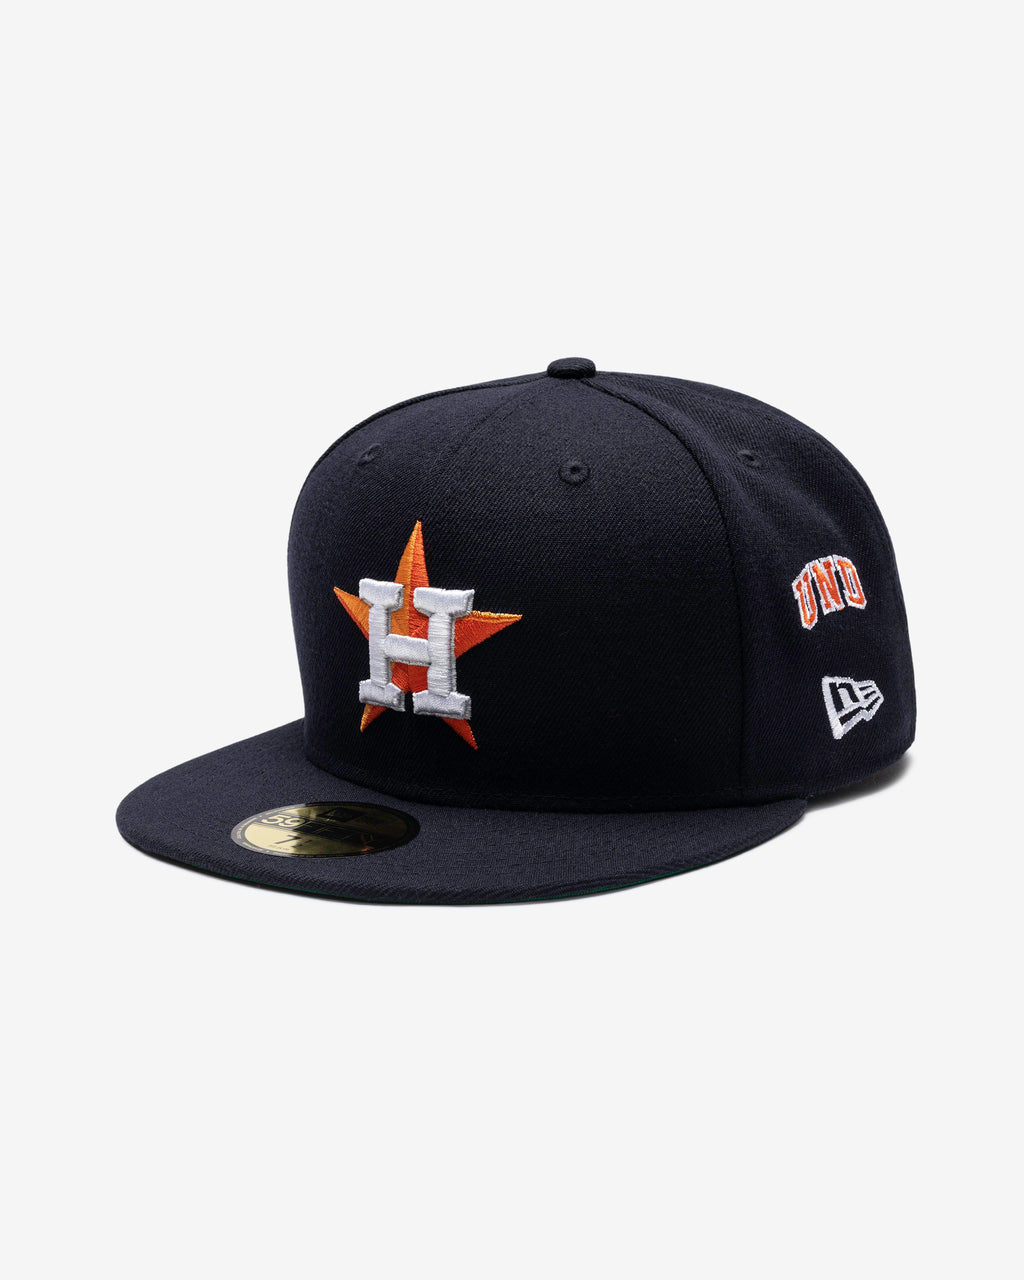 UNDEFEATED X NE X MLB FITTED - HOUSTON ASTROS